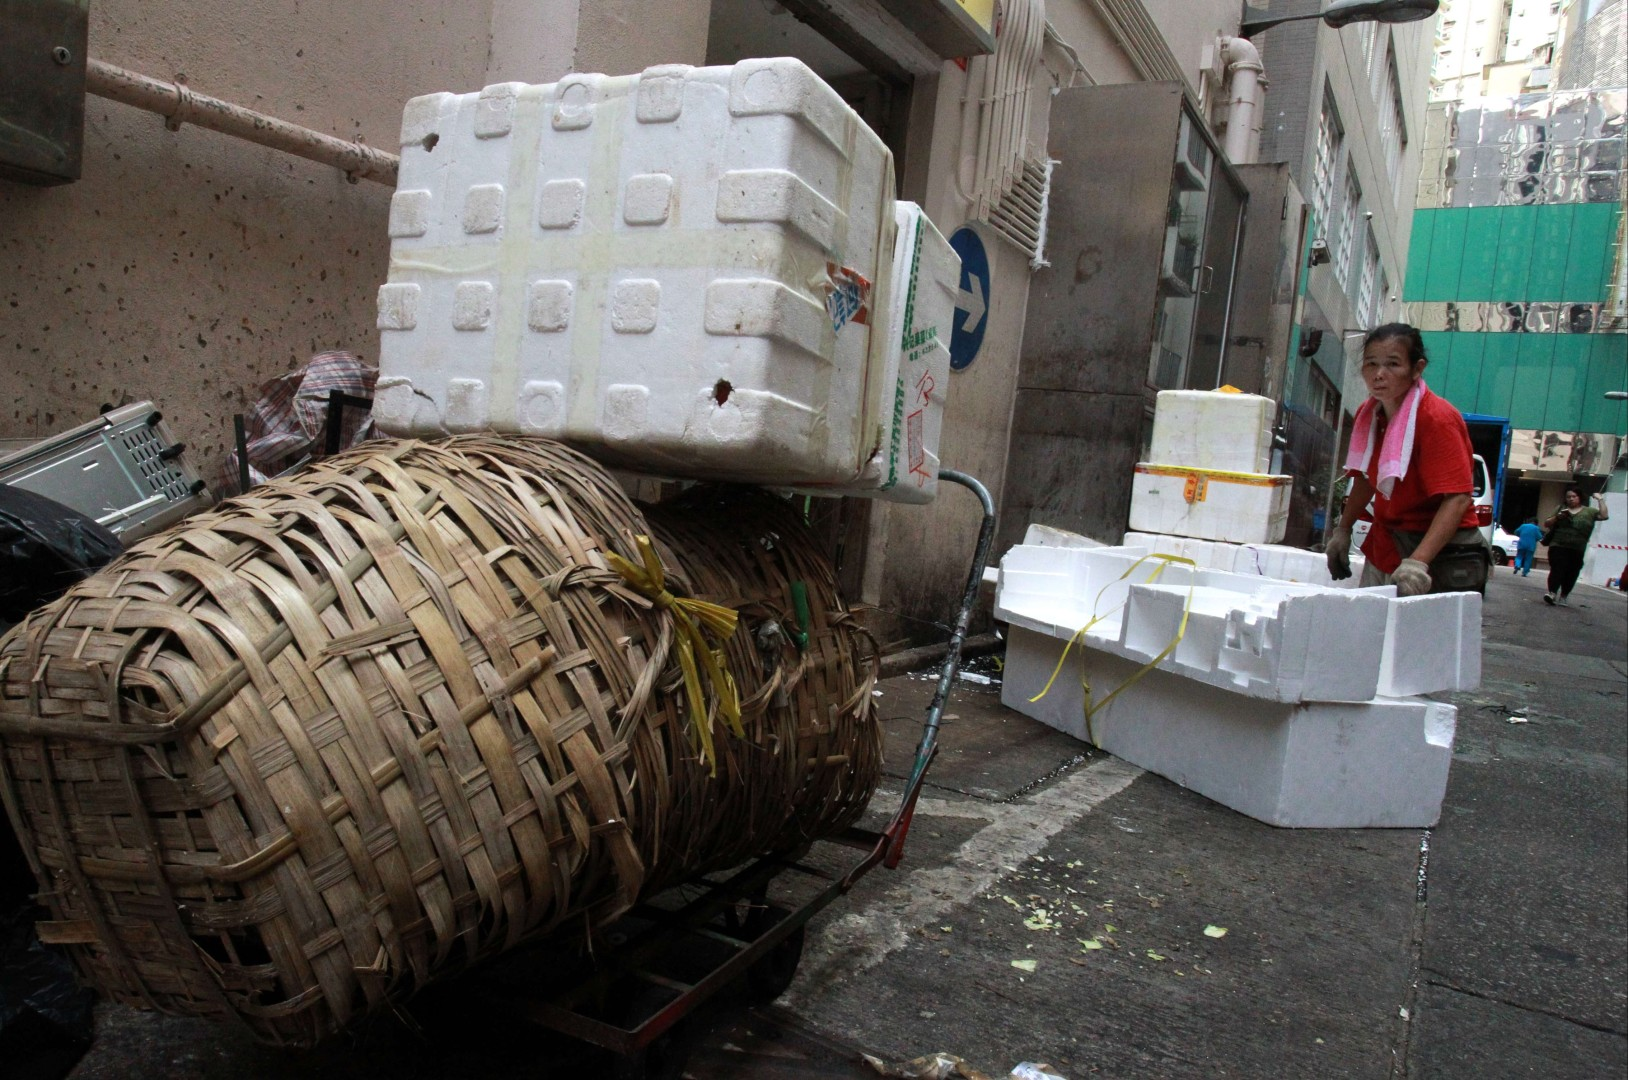 Hong Kong's fisheries blame lack of recycling facilities for